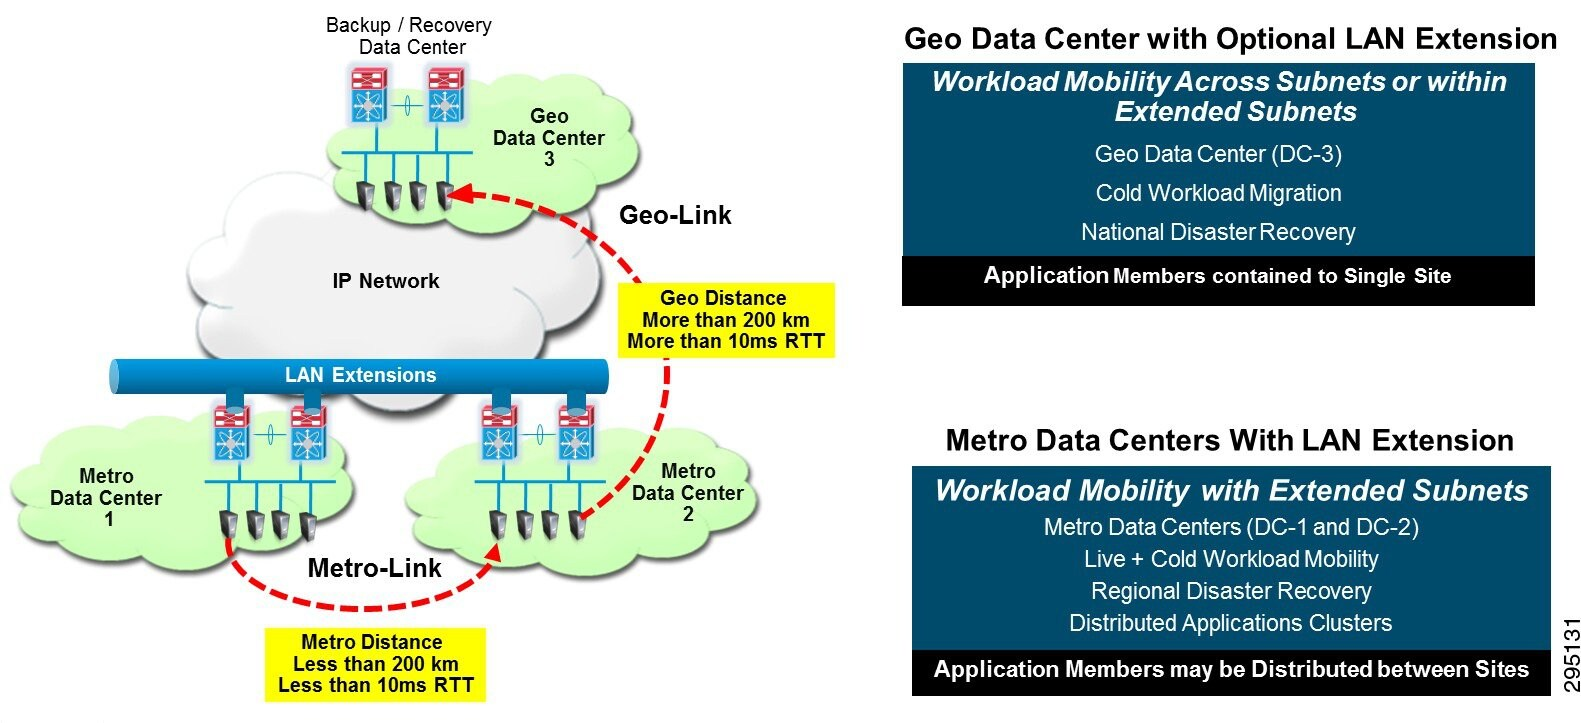 thesis on network virtualization Framework for multi-tenant enterprise cloud environments by made to network virtualization in this thesis: paper 1 multi-tenant network monitoring.